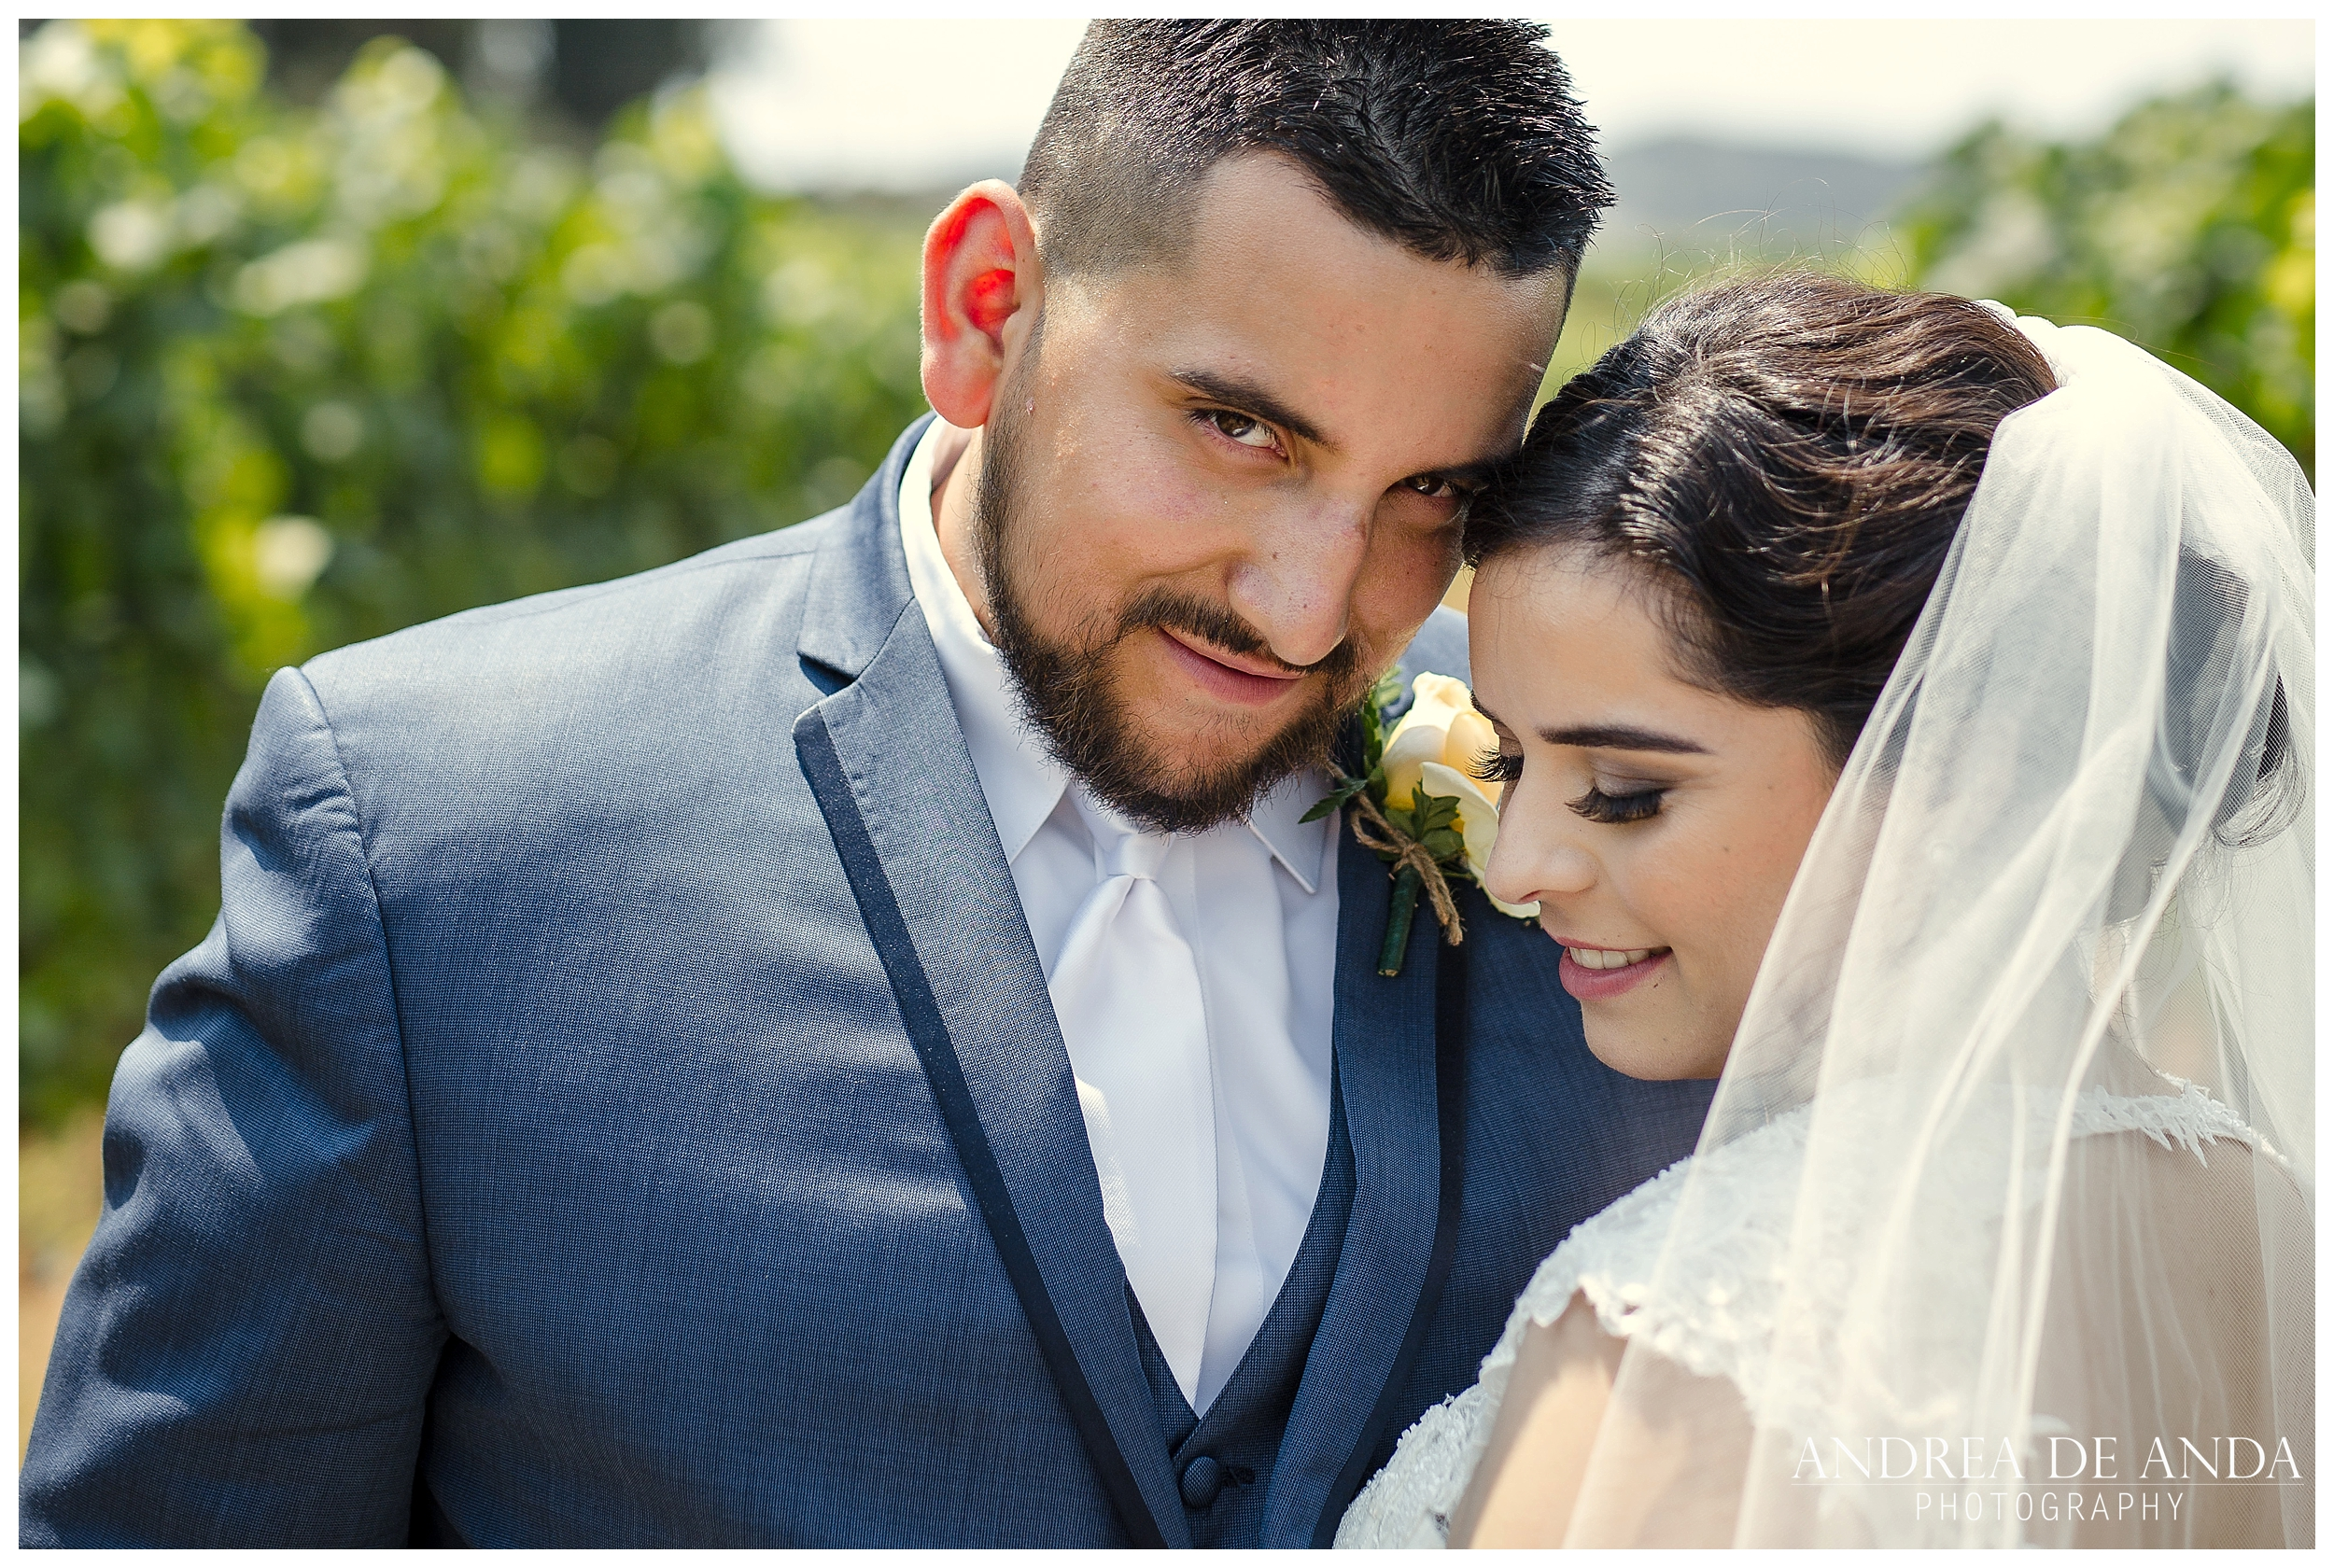 San Jose Wedding Photograhy by Andrea de Anda Photography__0020.jpg